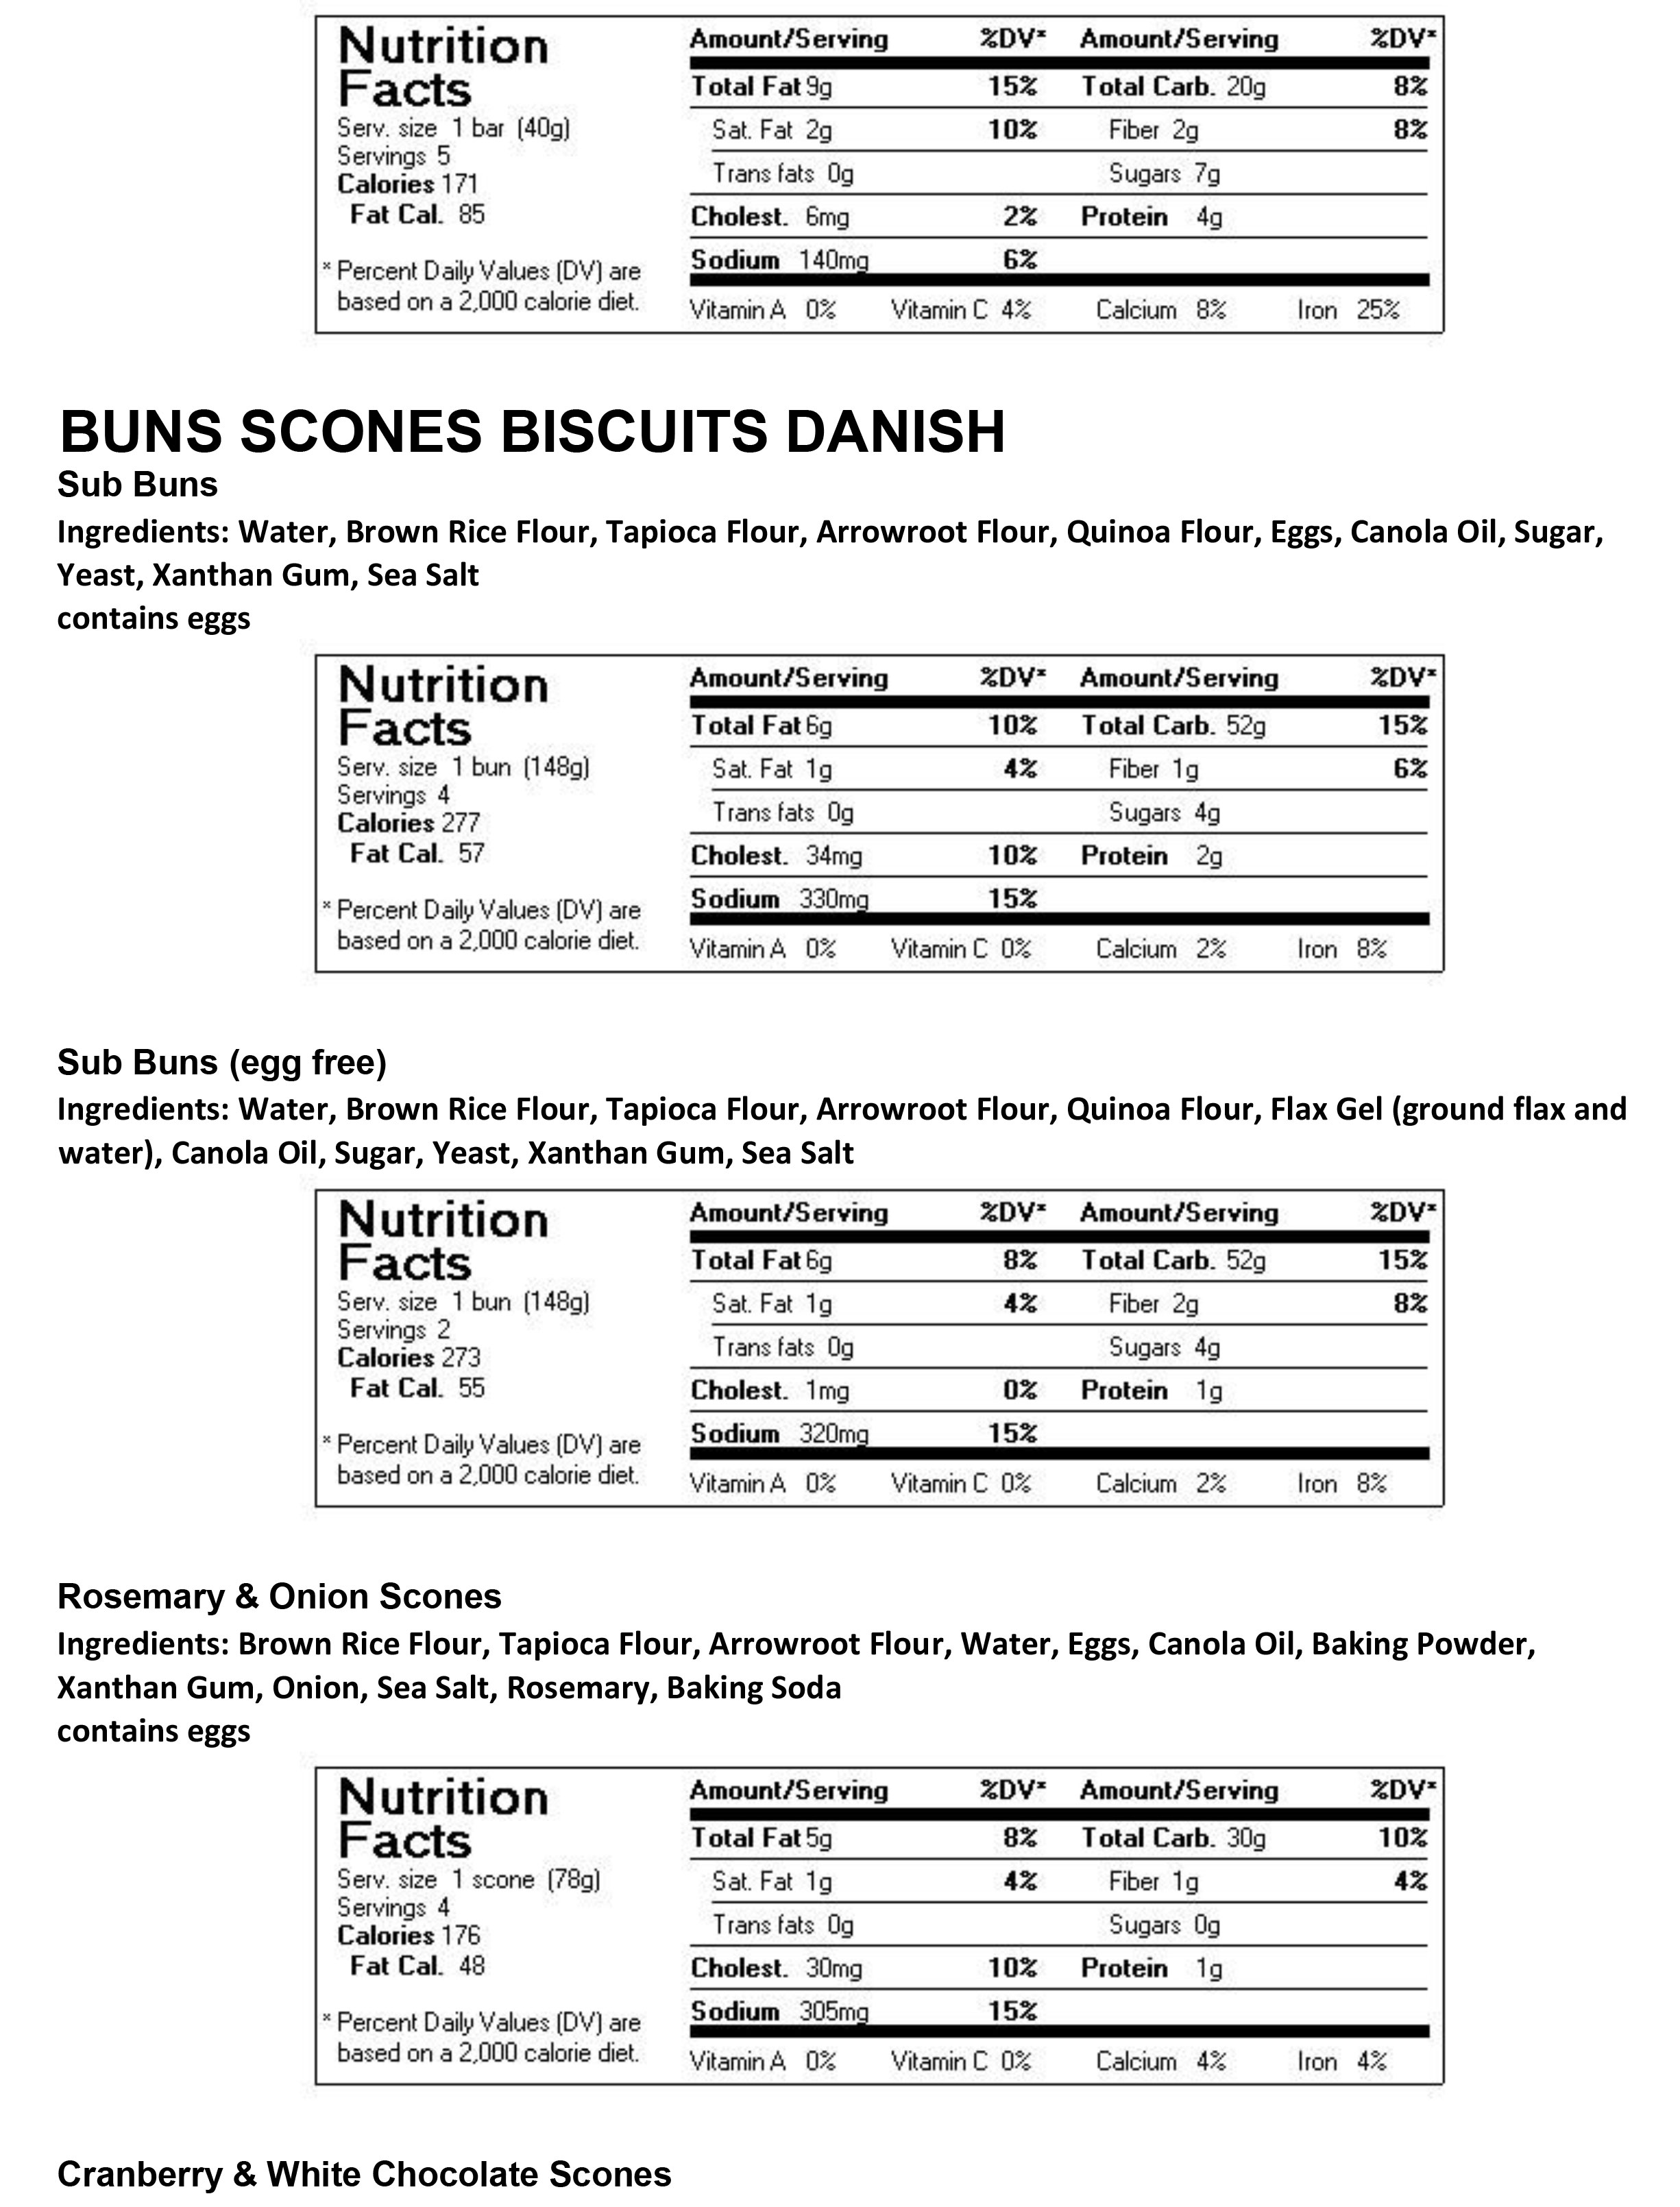 Buns Scones Biscuits Danish